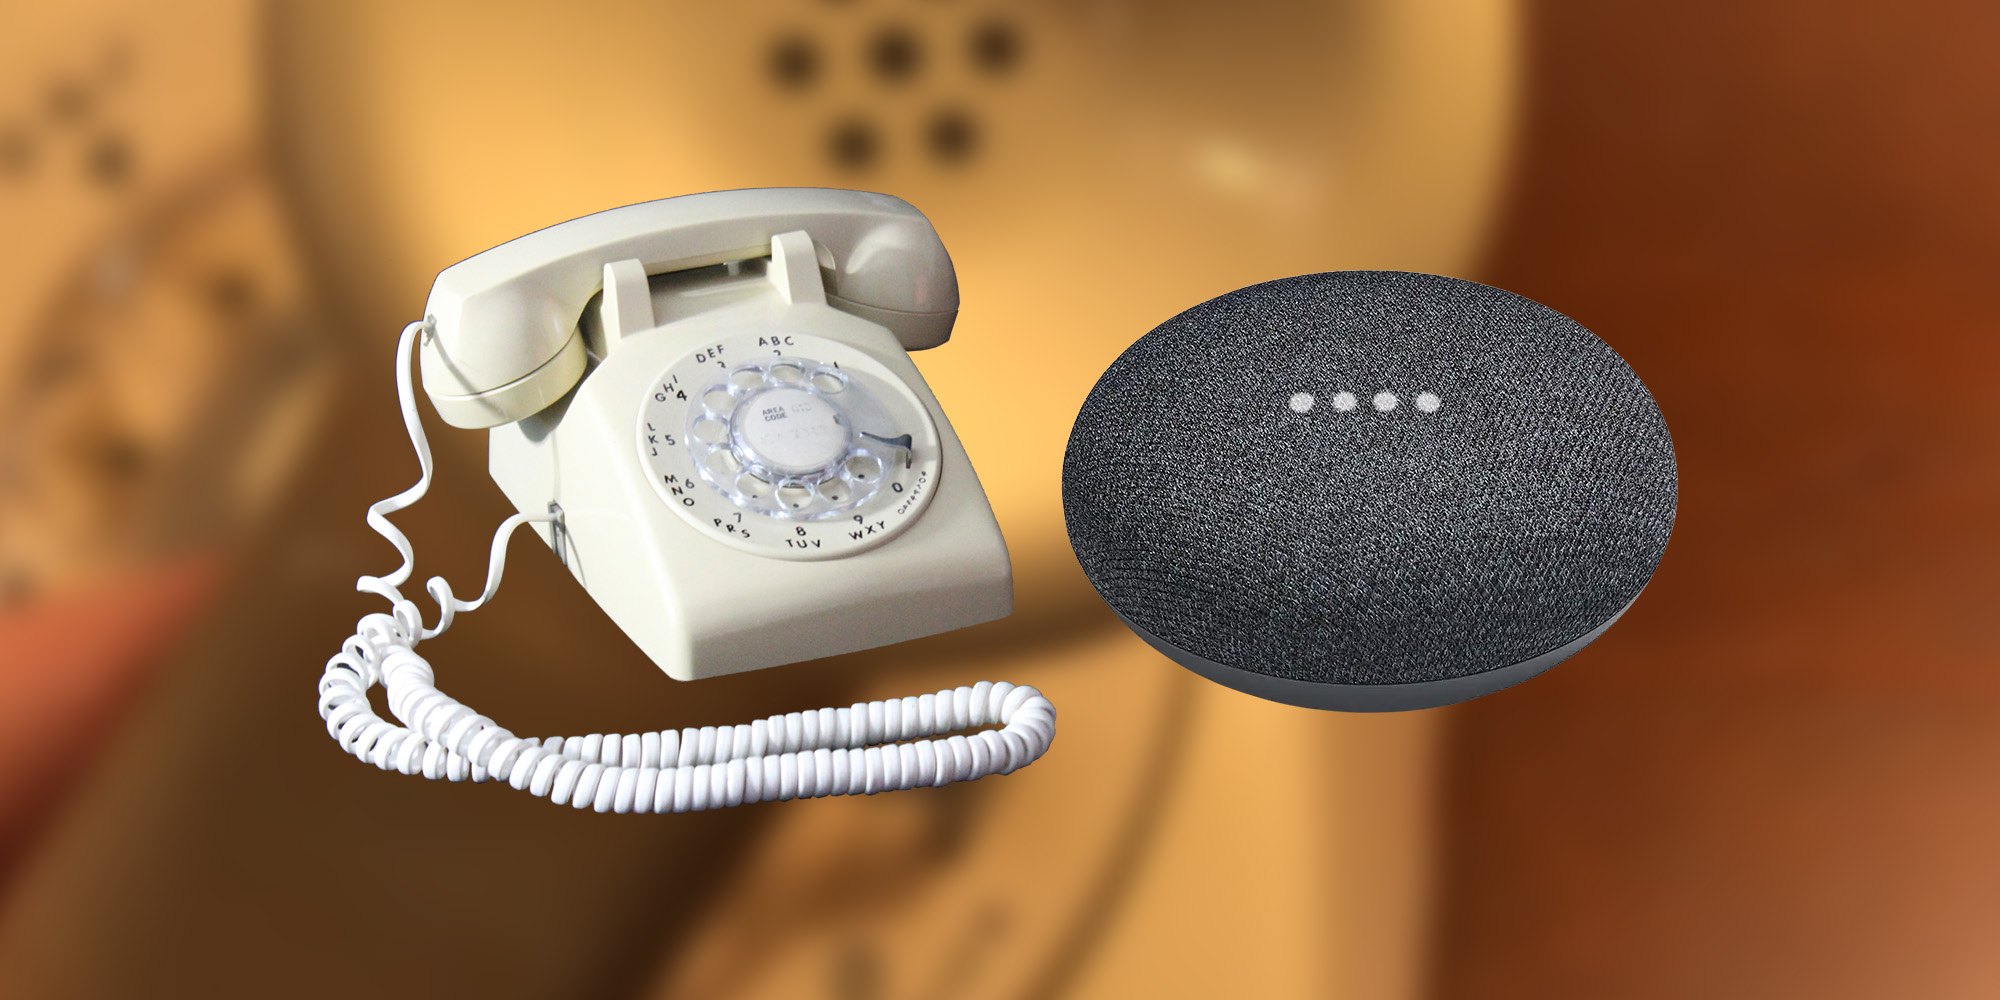 Mod puts Google Home Mini in a rotary phone so you can hang up on Assistant - 9to5Google